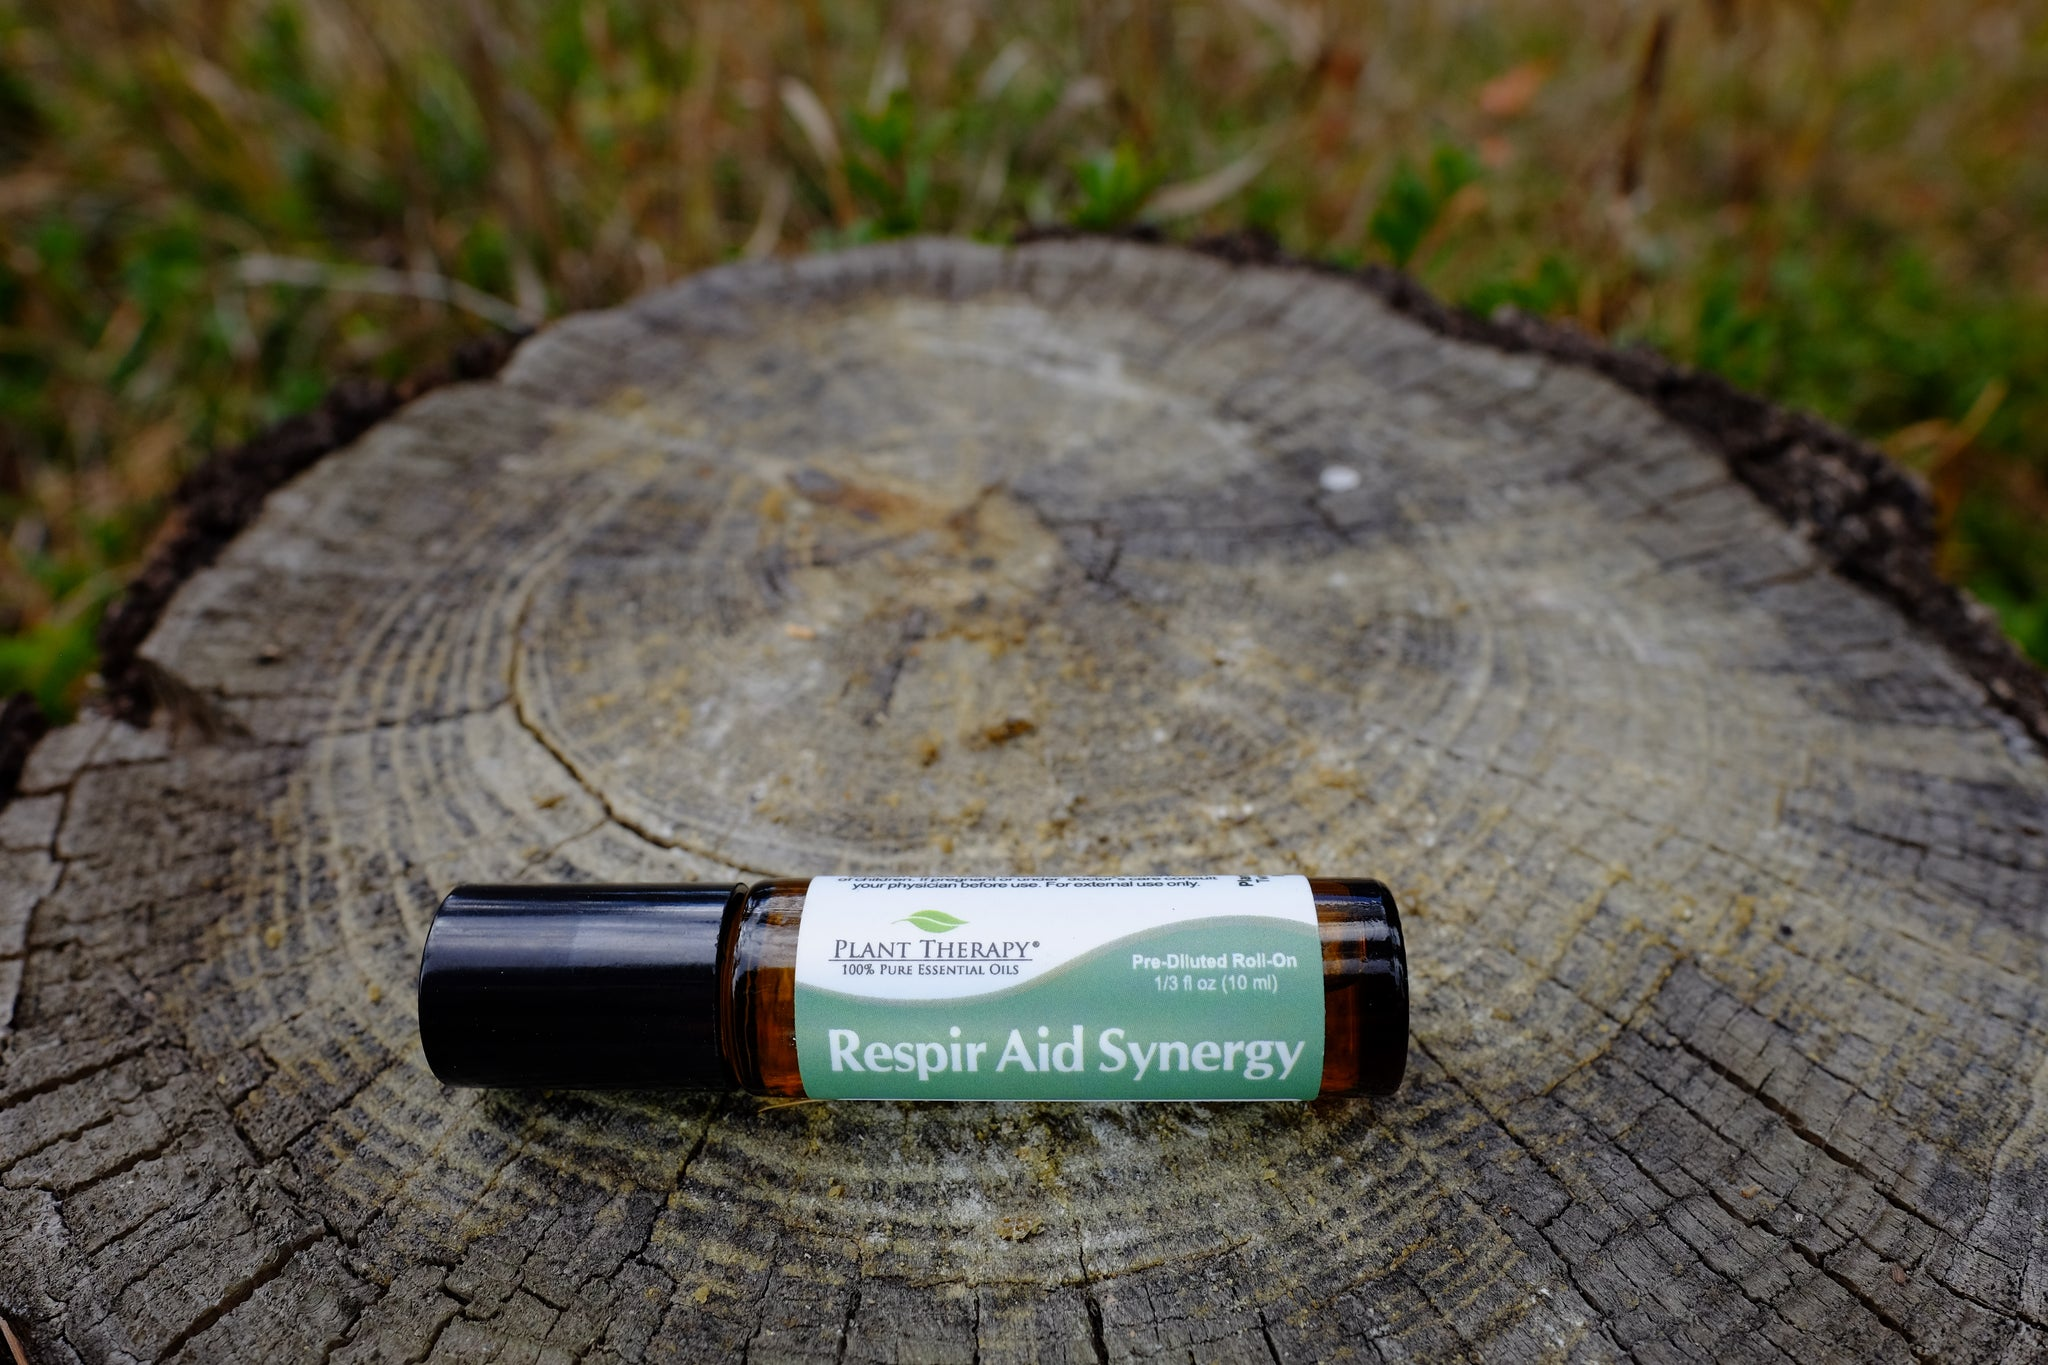 Respir Aid Synergy Roll-on Essential Oil